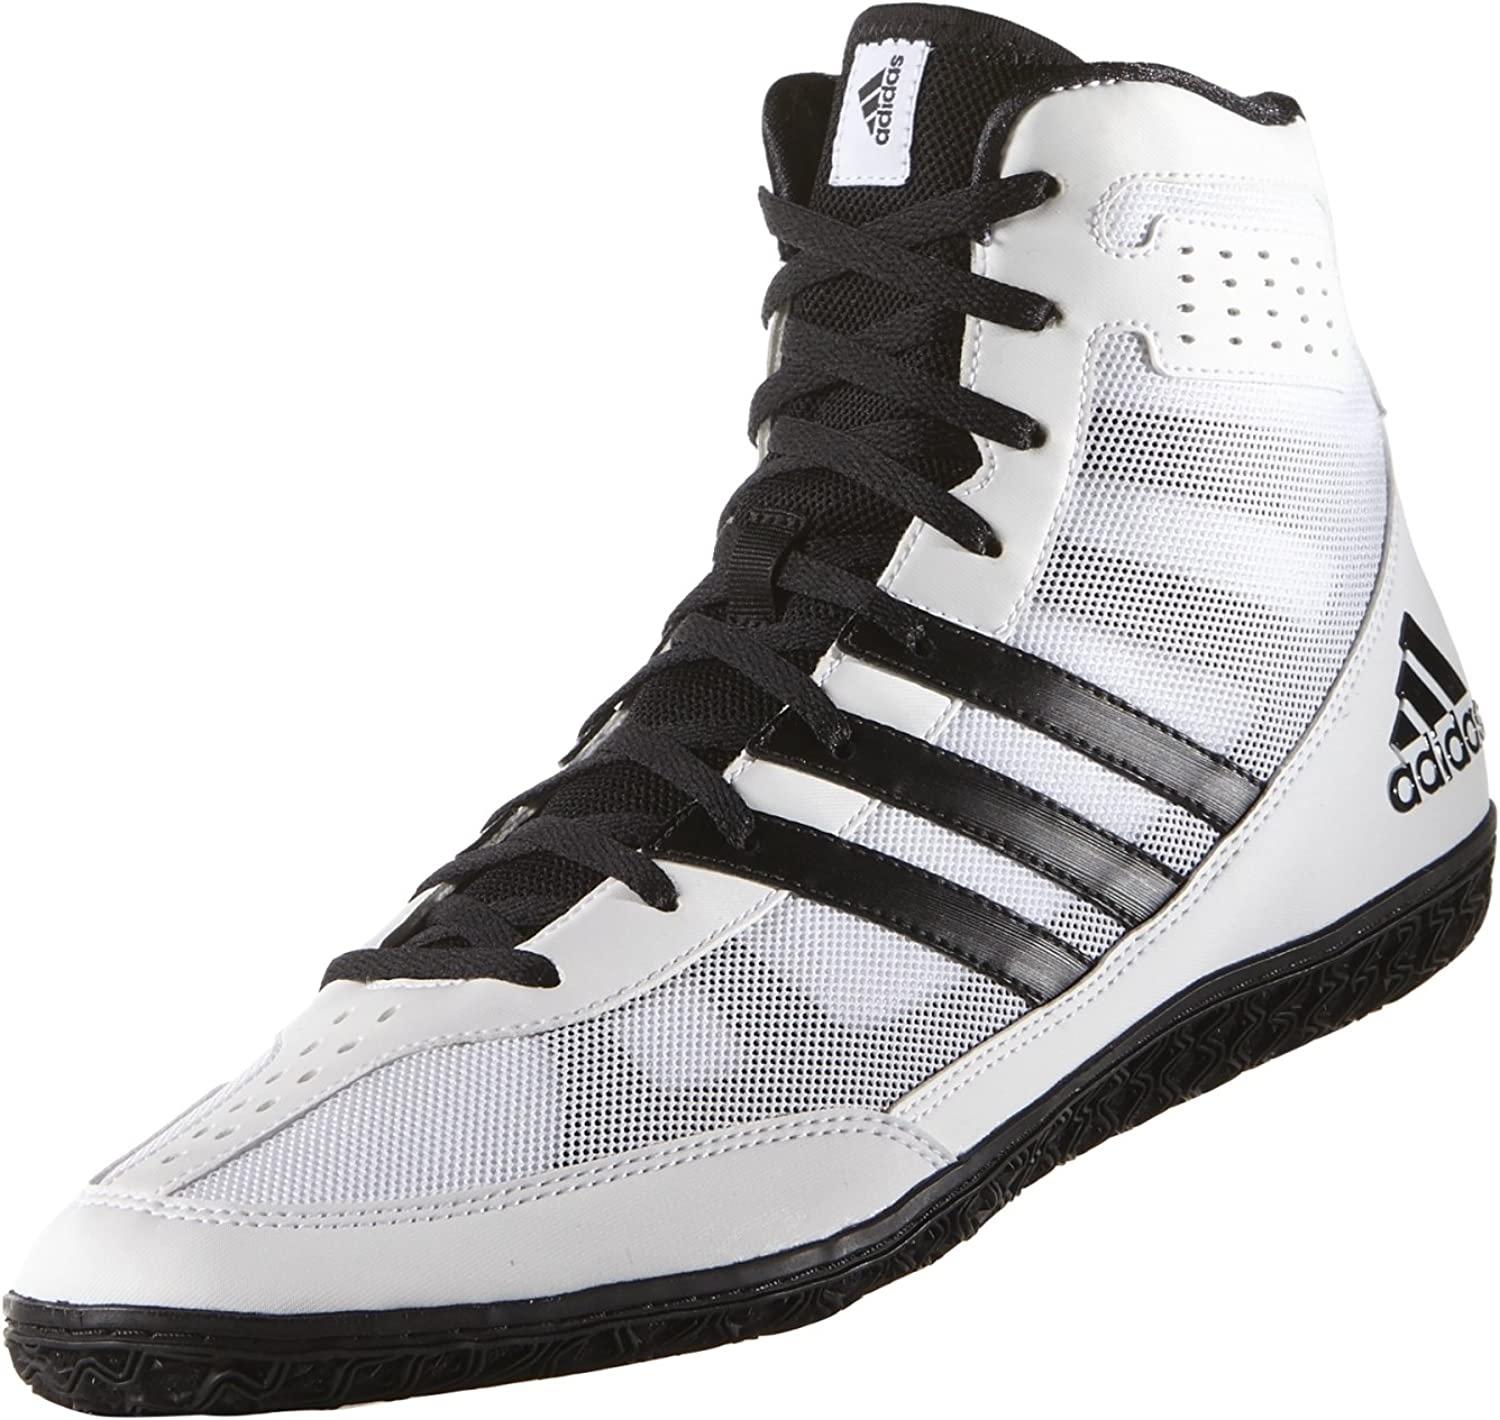 Black /& White Adidas Mat Wizard 3 Boxing /& Wrestling Boots